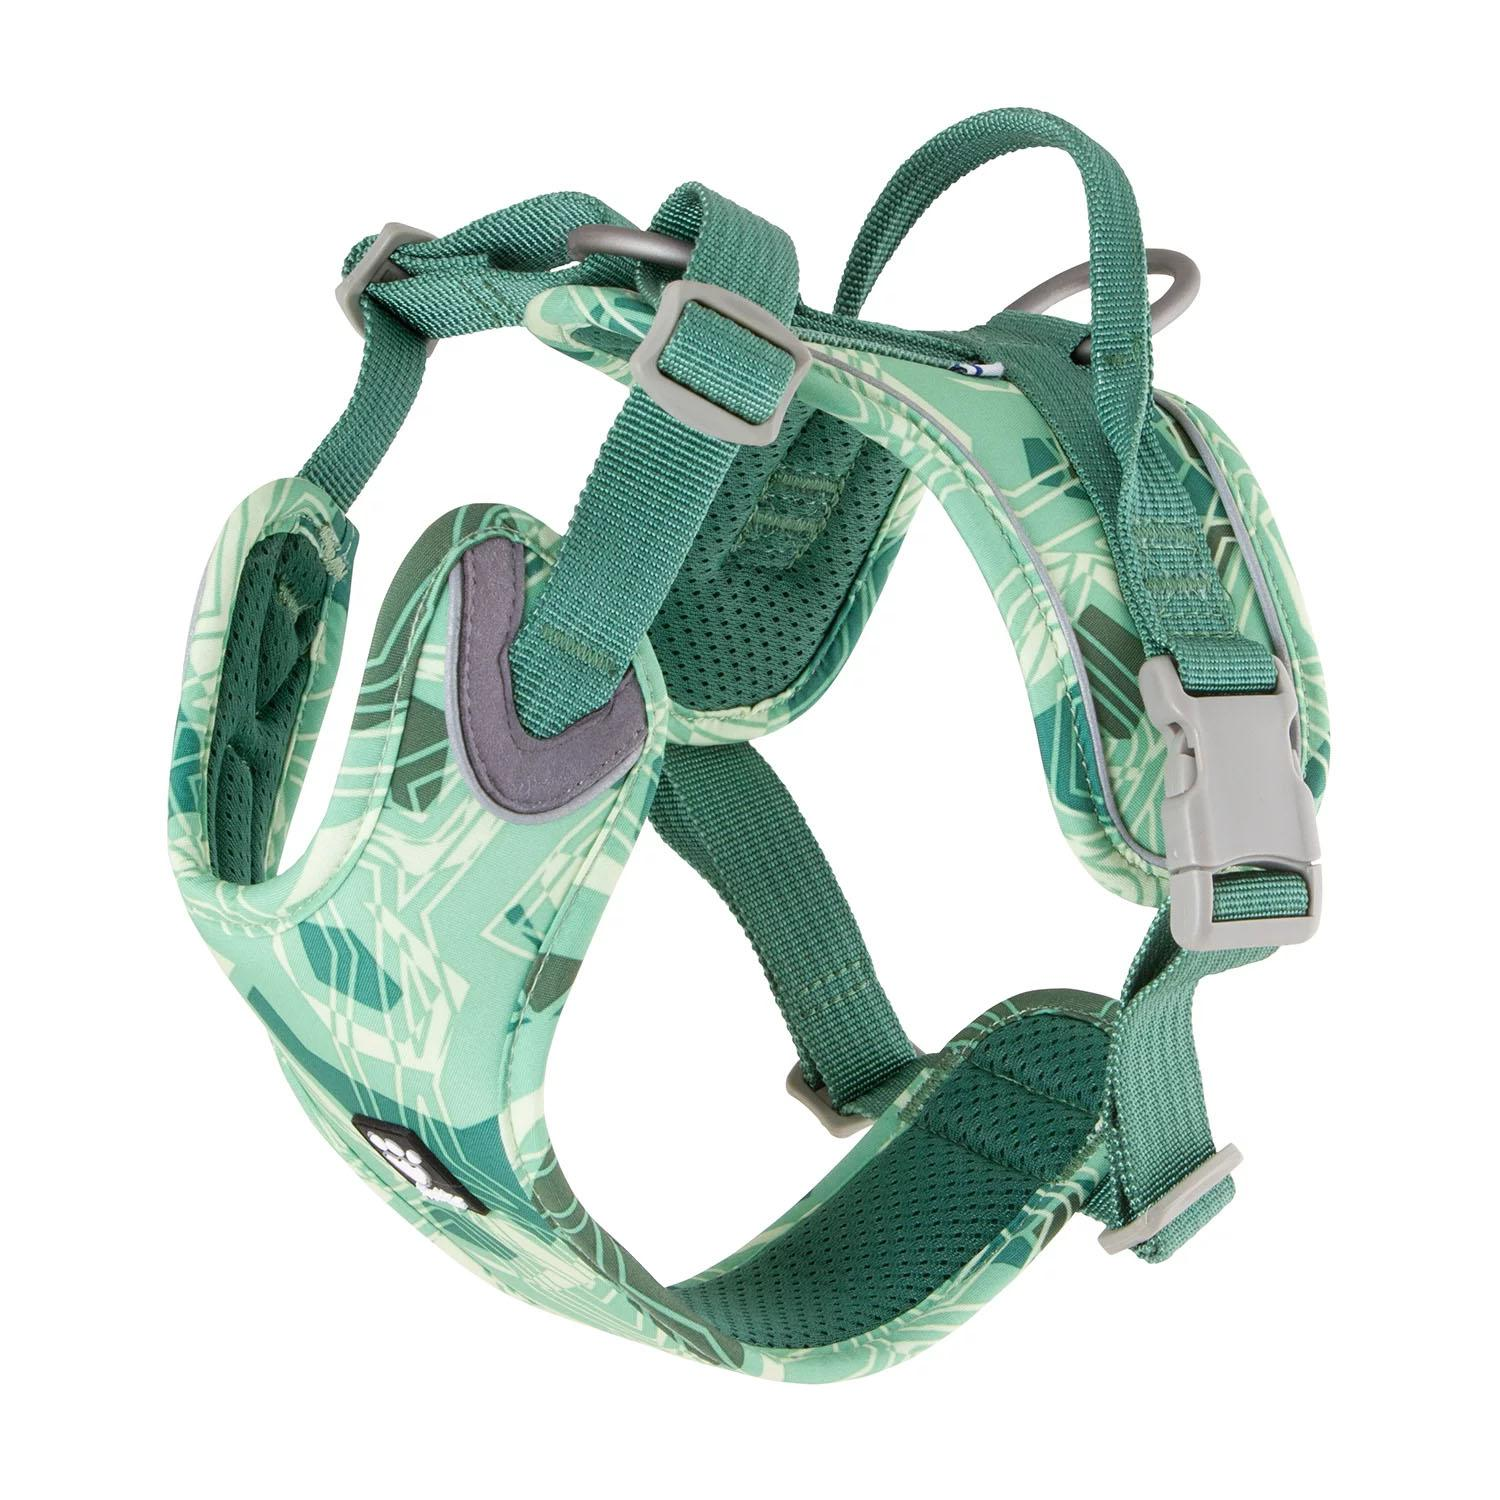 Hurtta Weekend Warrior Dog Harness - Park Camo